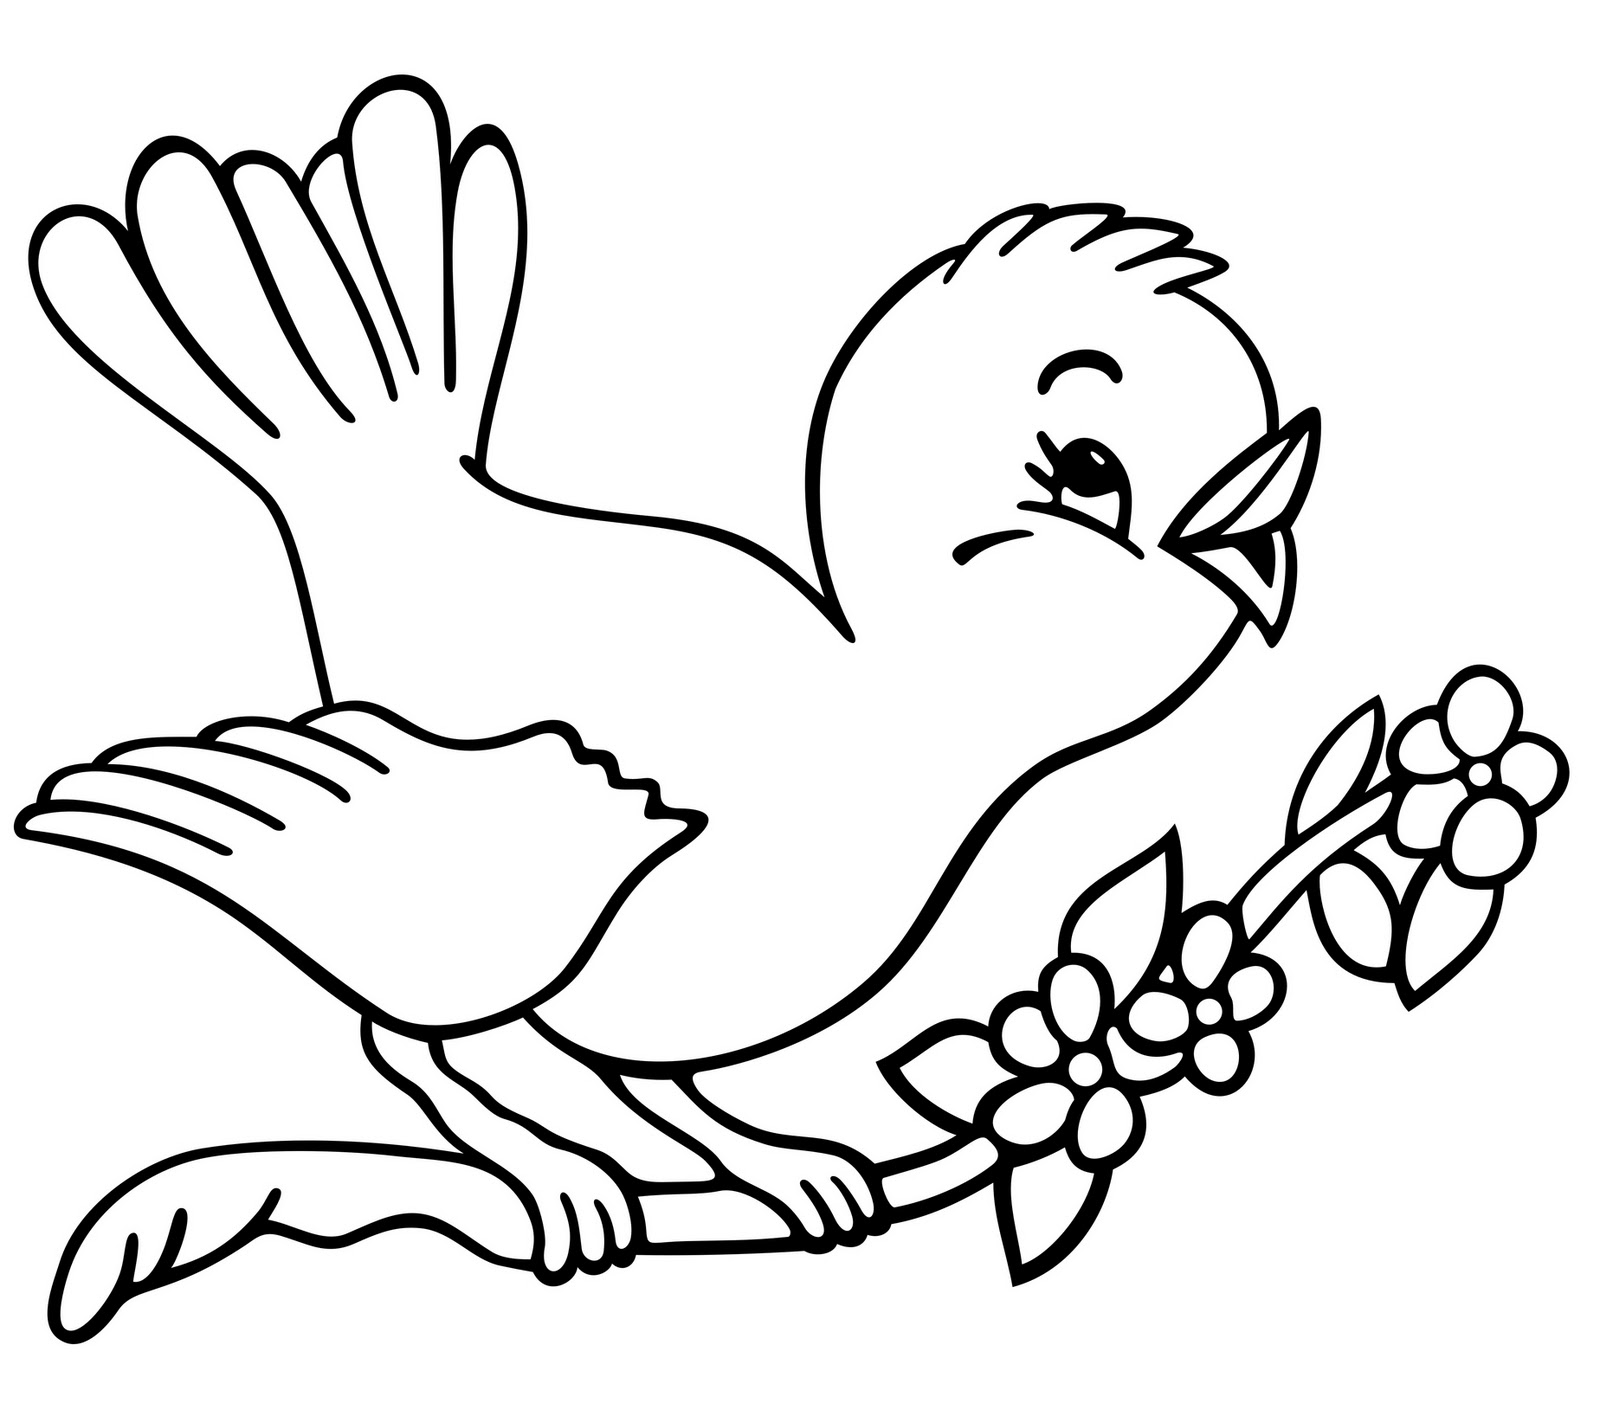 1600x1403 Coloring Pages Draw Easy Animals Cute How To A Bat Step 6 Cute